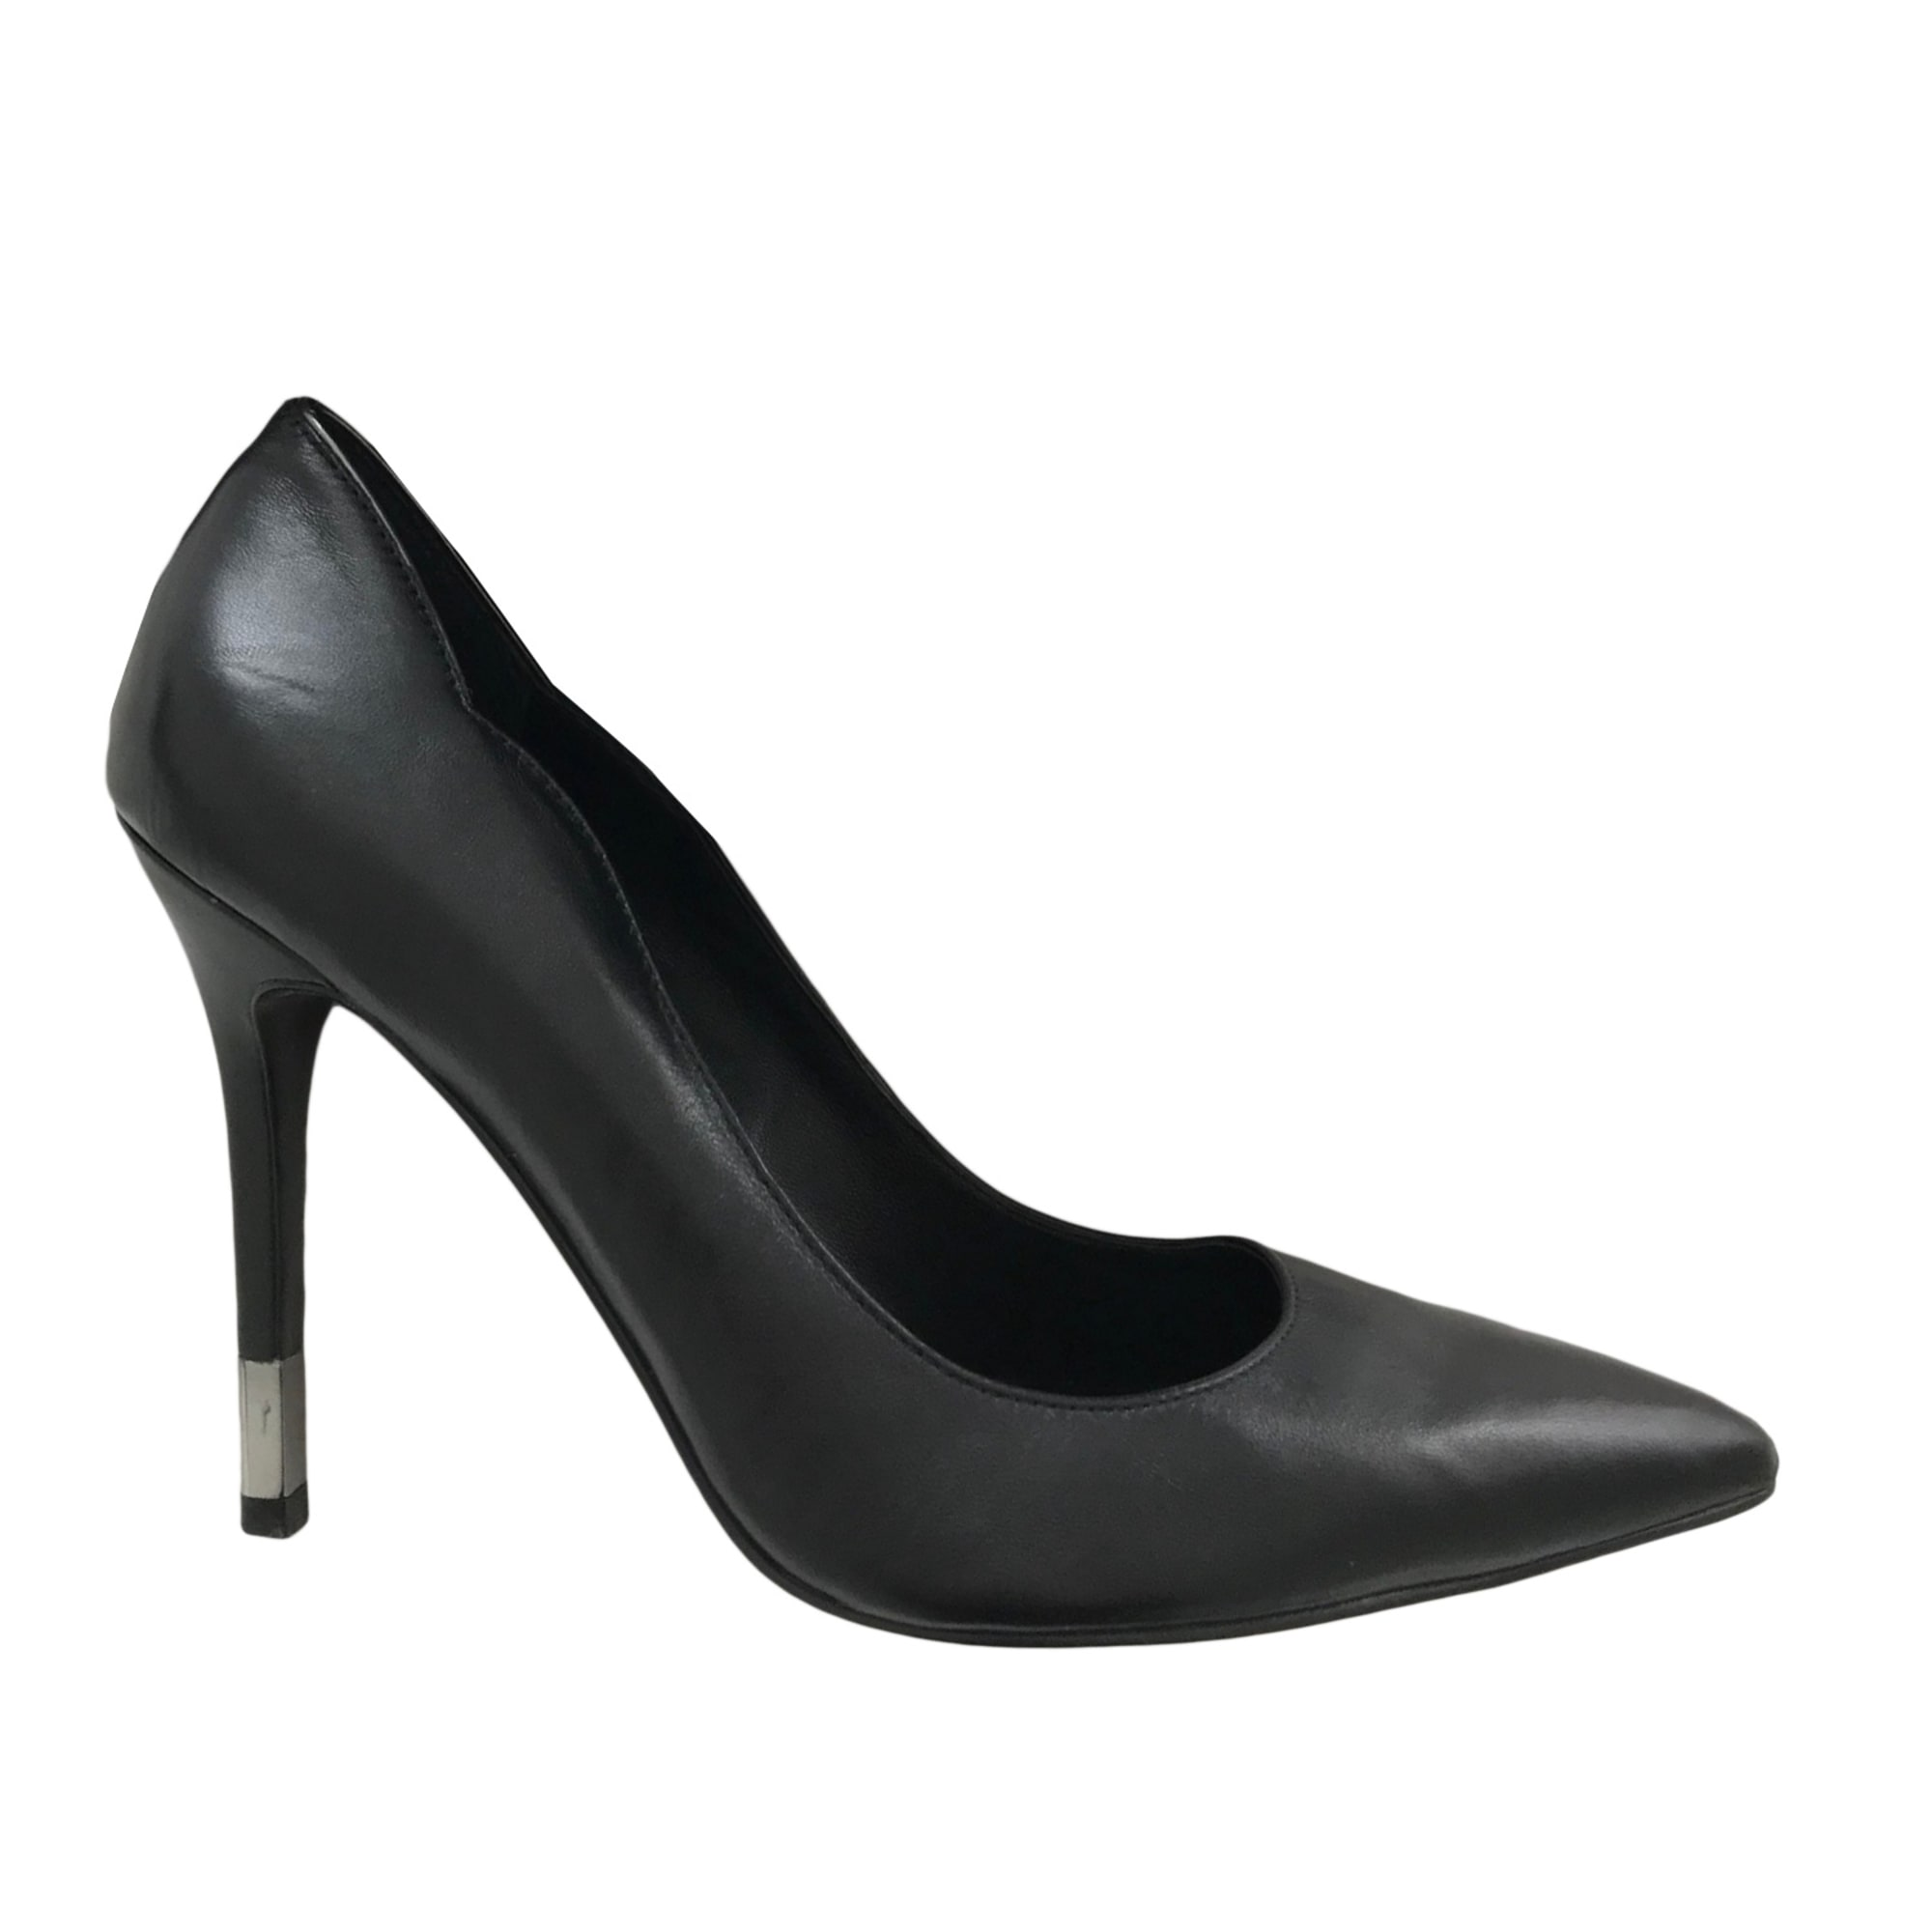 Pumps, Heels GUESS Black